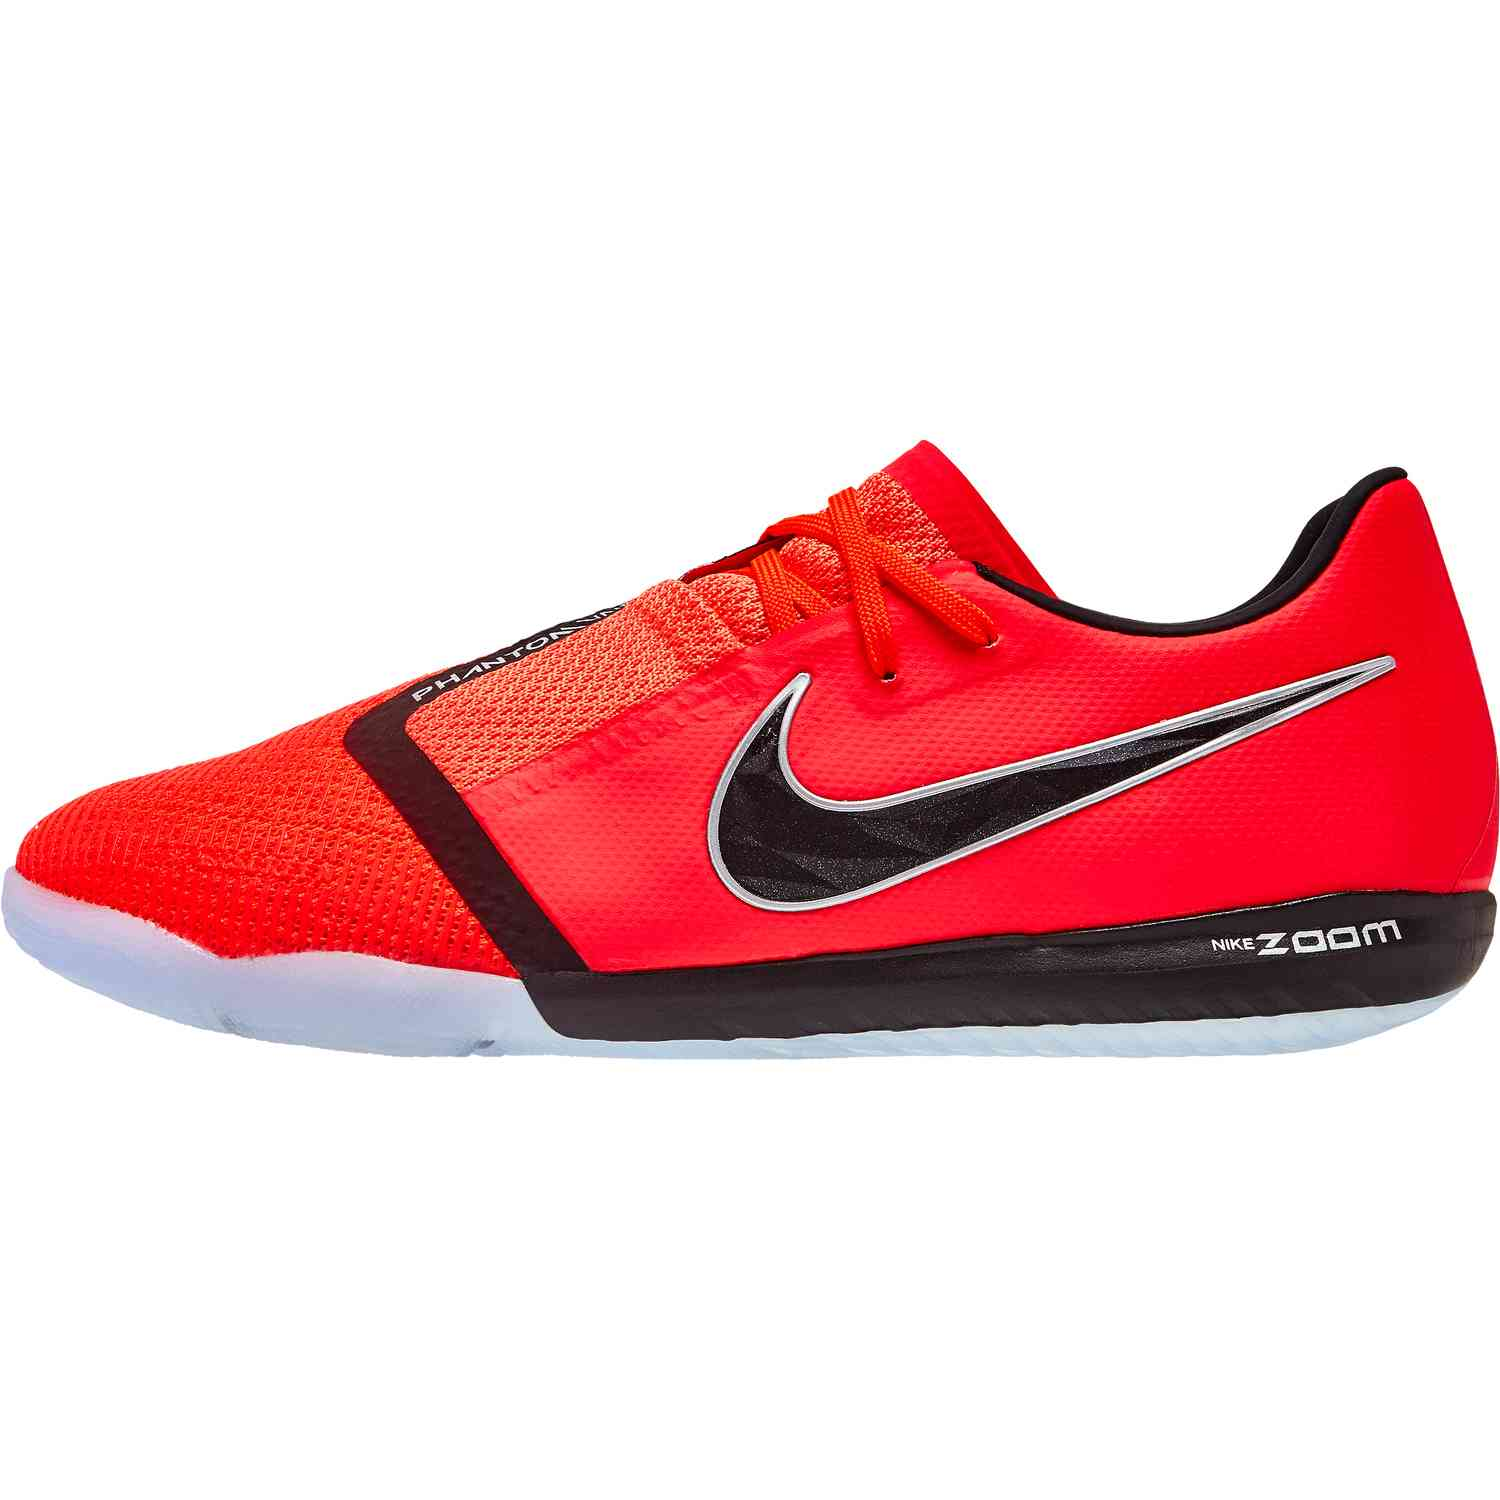 44cc273db Nike Phantom Venom Pro IC - Game Over - SoccerPro